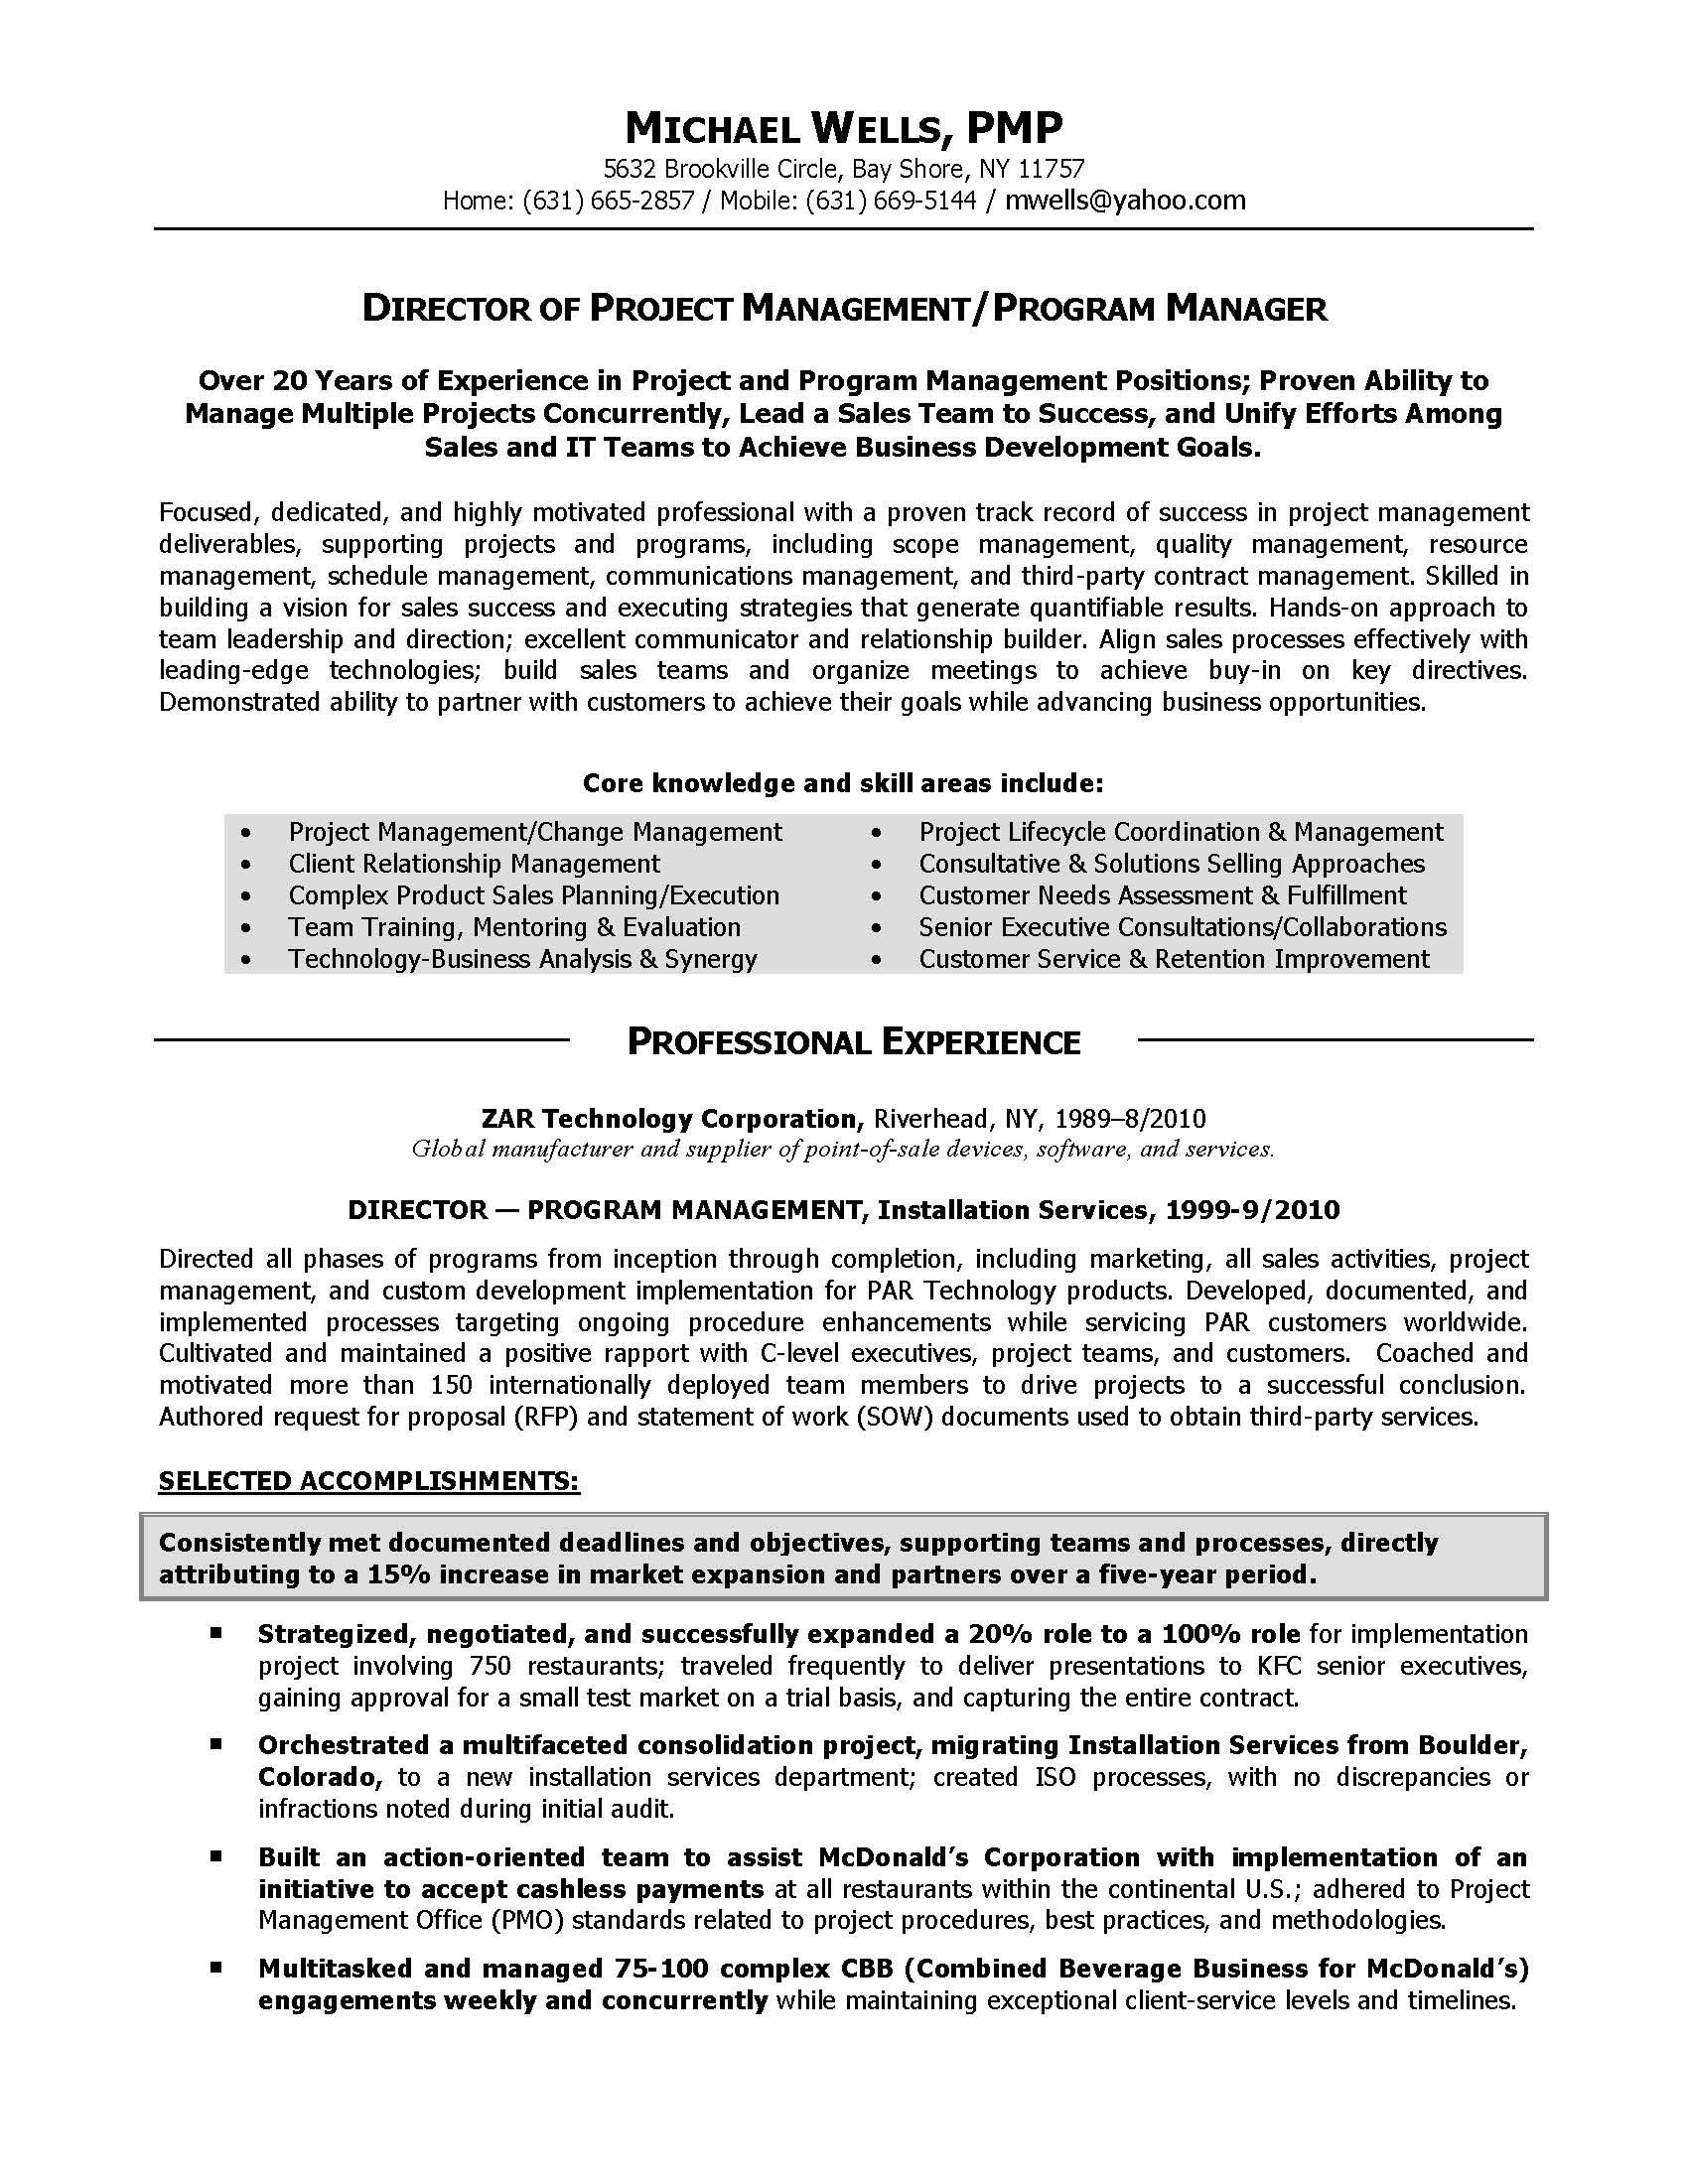 resume Projects On Resume clinical project manager sample resume reference manual template articles of incorporation management director manage